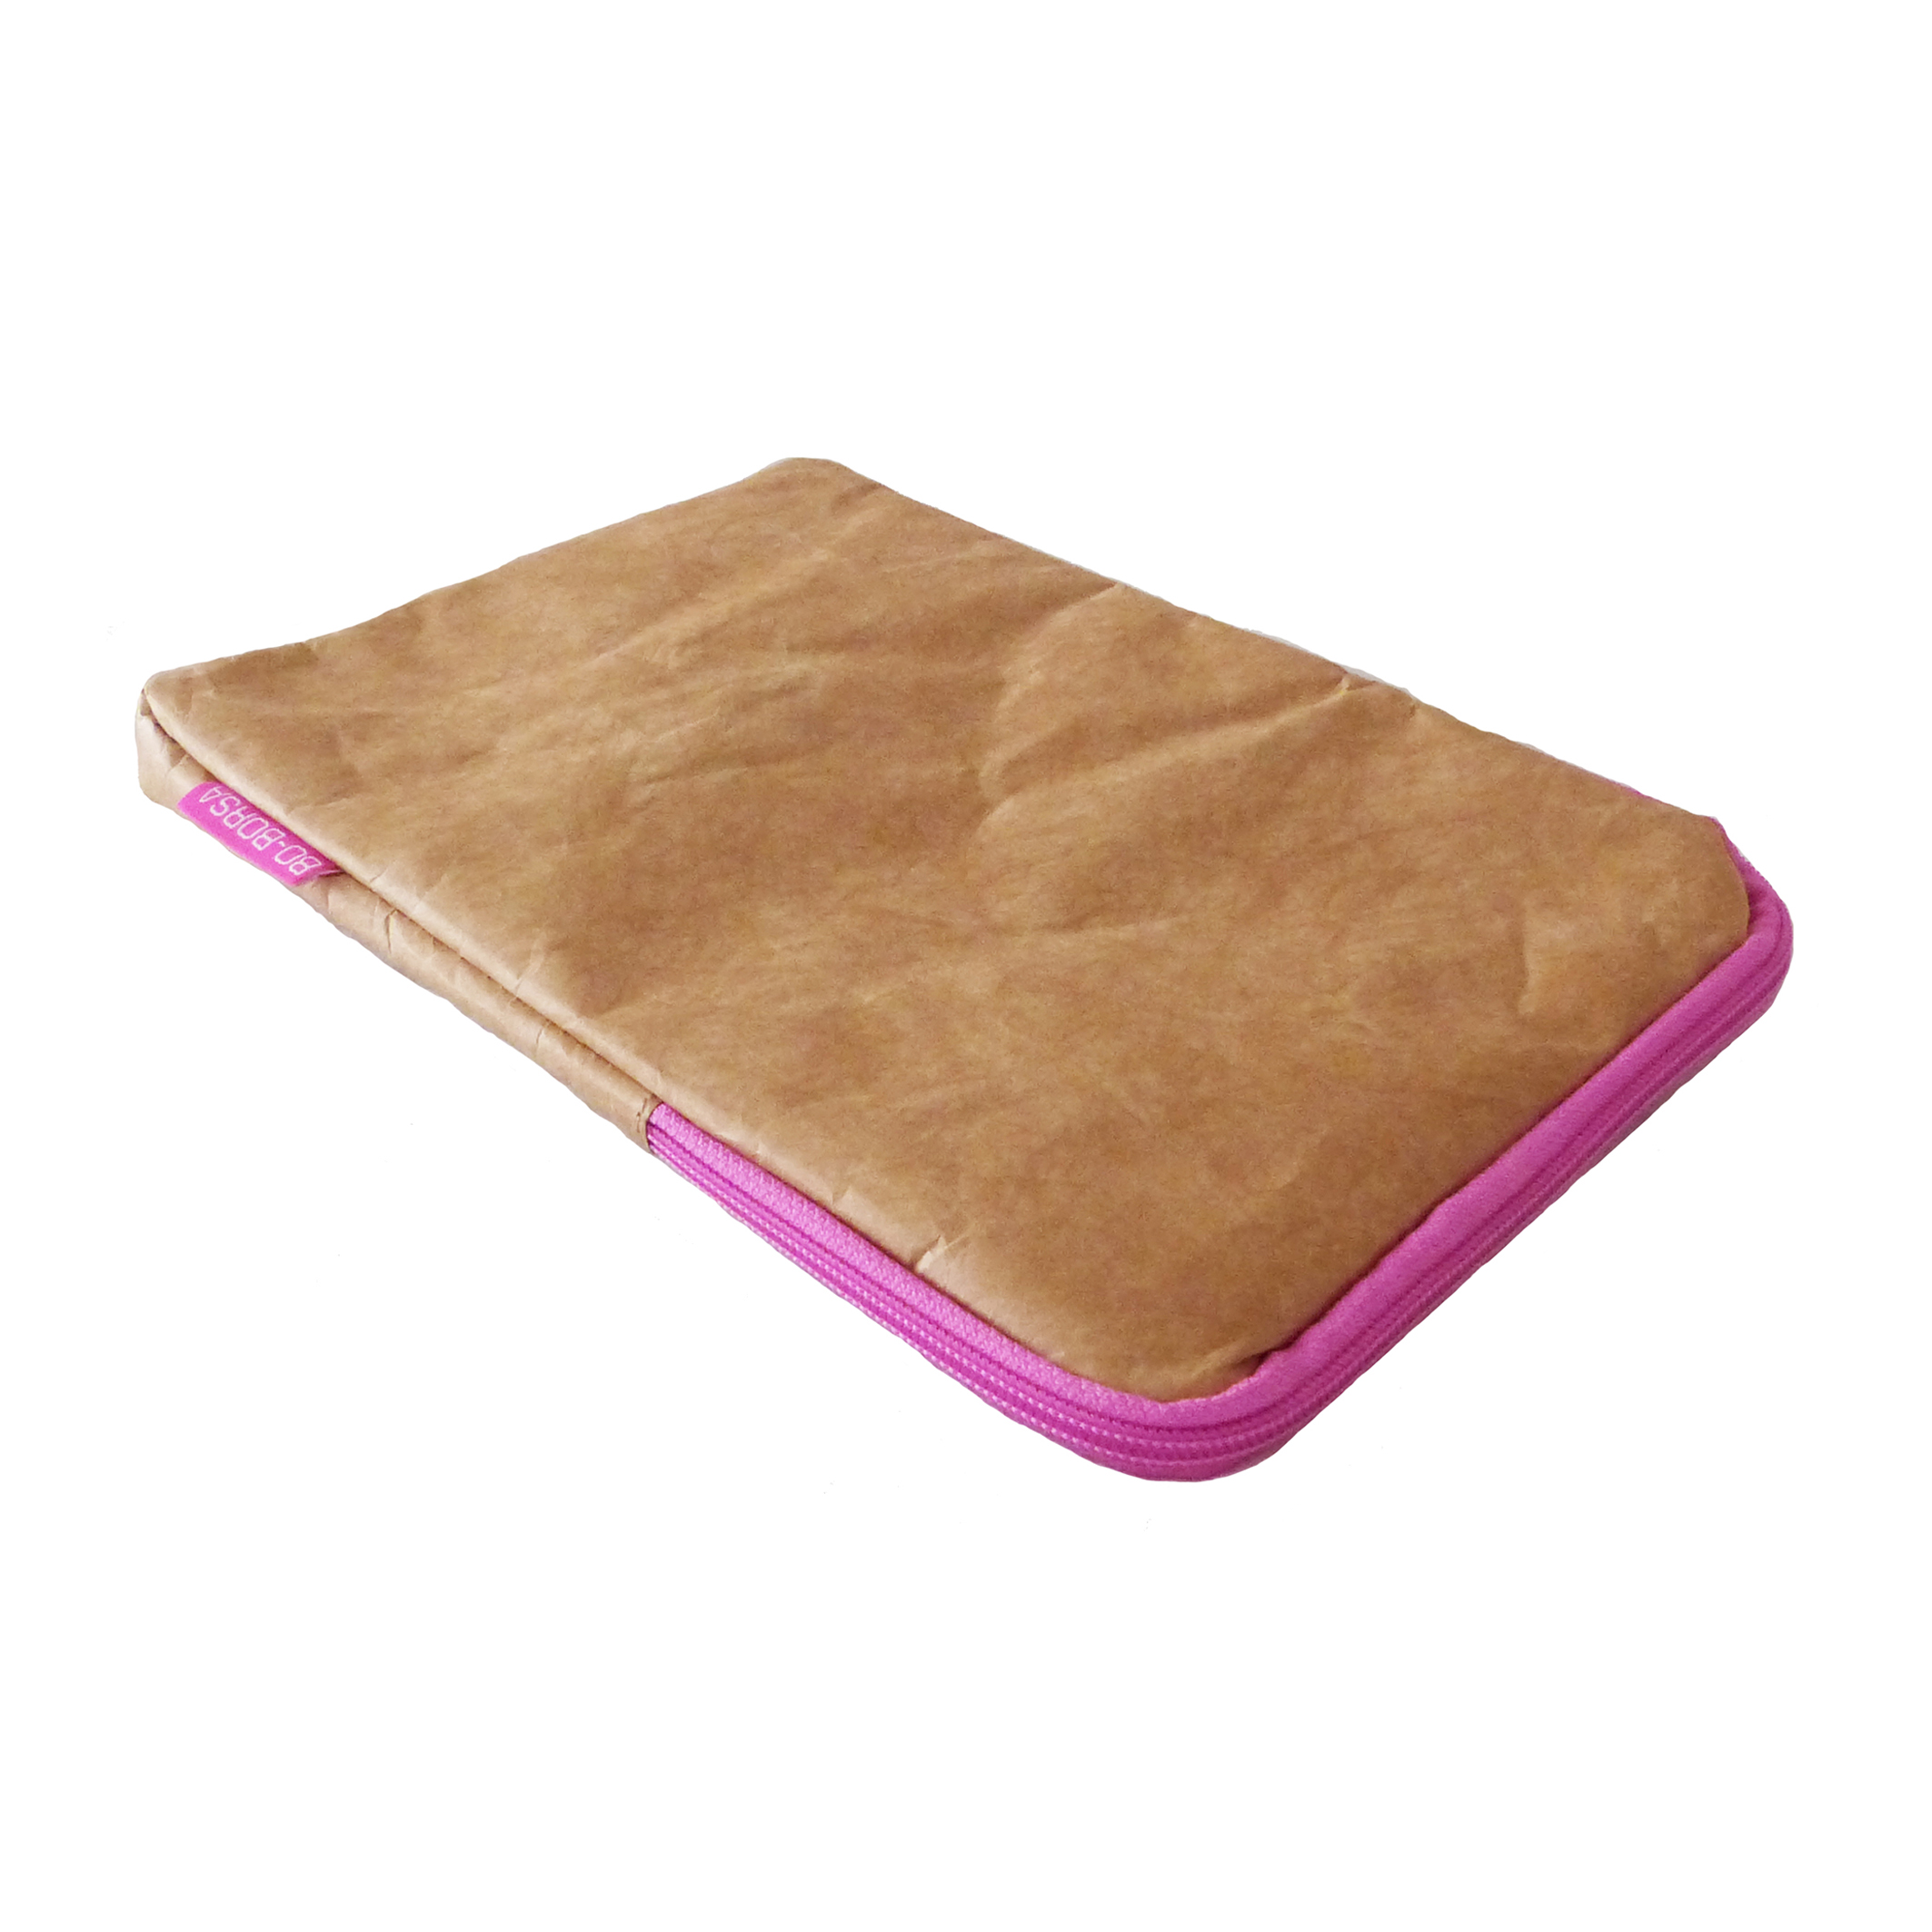 brown tyvek ipad cover pink zip